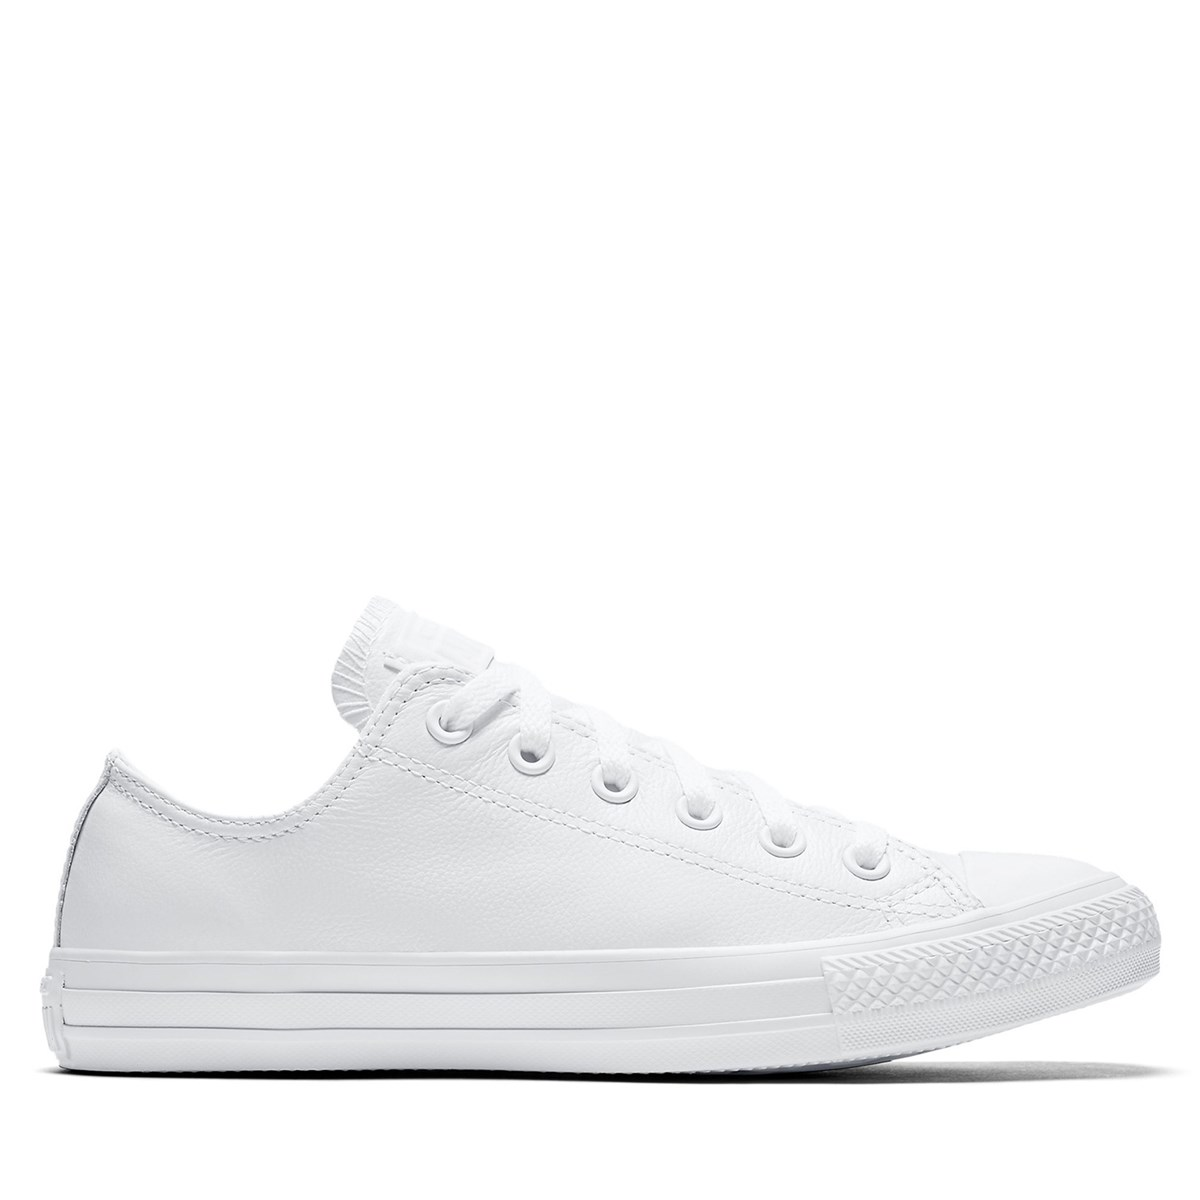 74d3d91c9f81 Chuck Taylor All Star Mono Leather Low Top Sneaker. Previous. default view   ALT1  ALT2